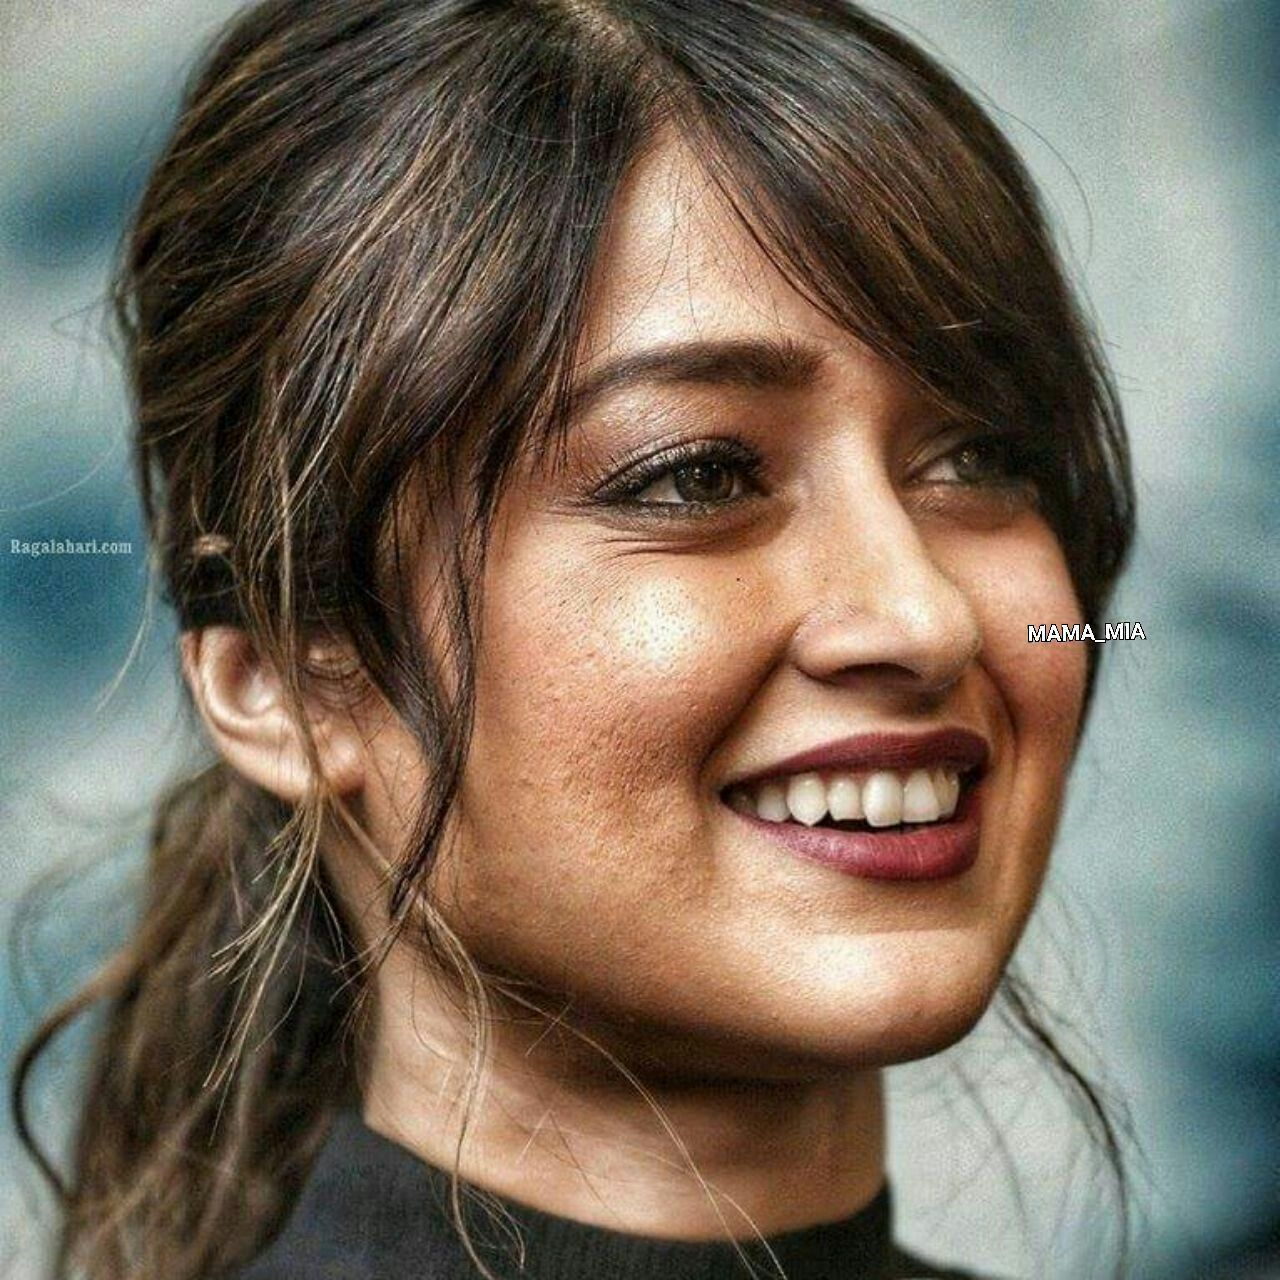 tollywood actress illeana dcruz without make-up | actress without